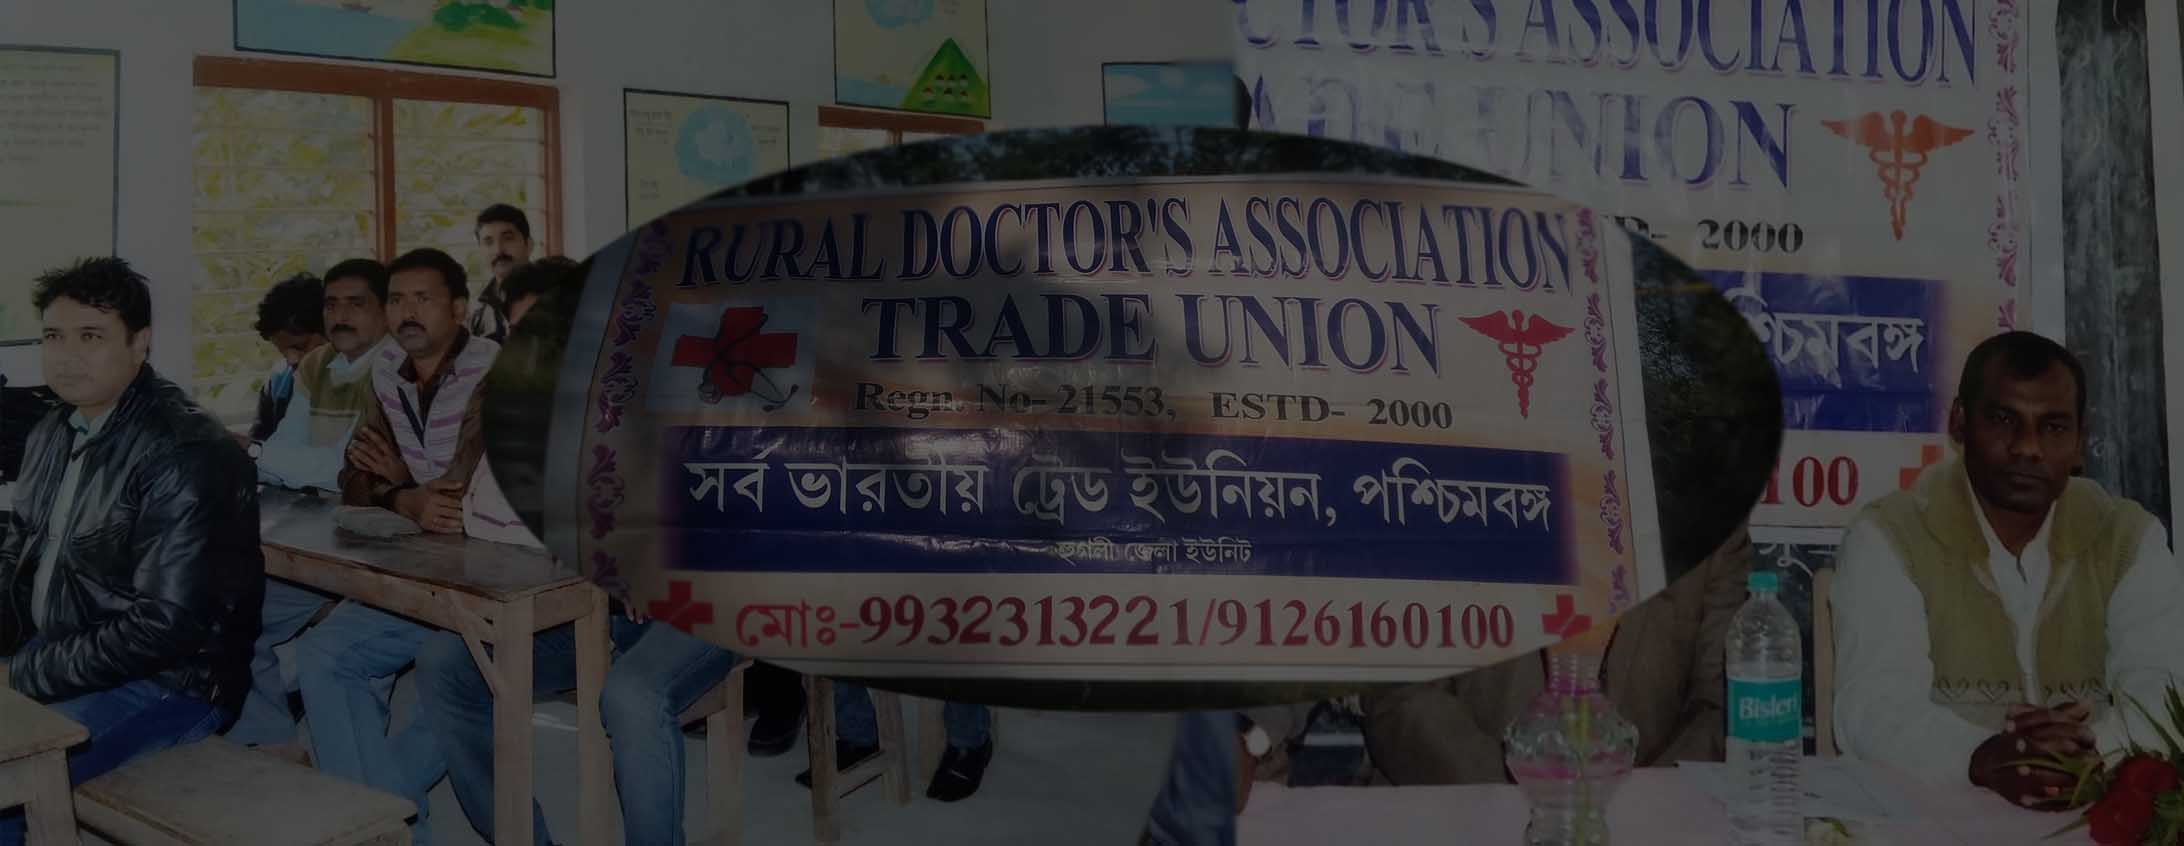 Rural Doctors Association of India